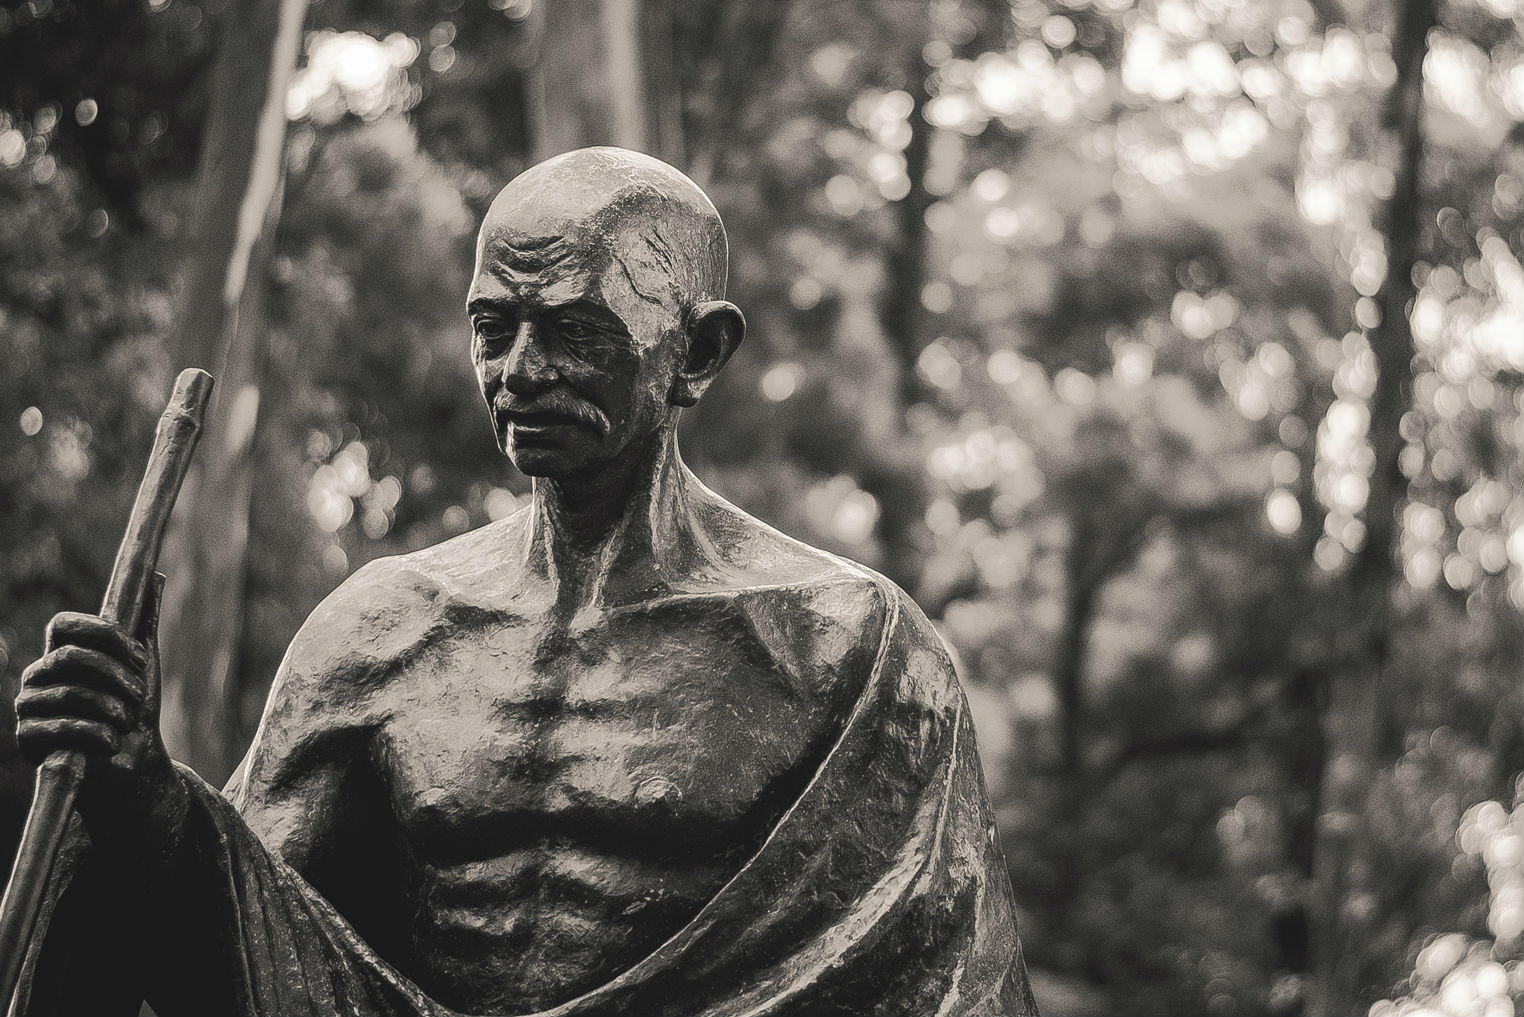 Gandhi Jayanti – places in India where you can pay homage to Gandhi